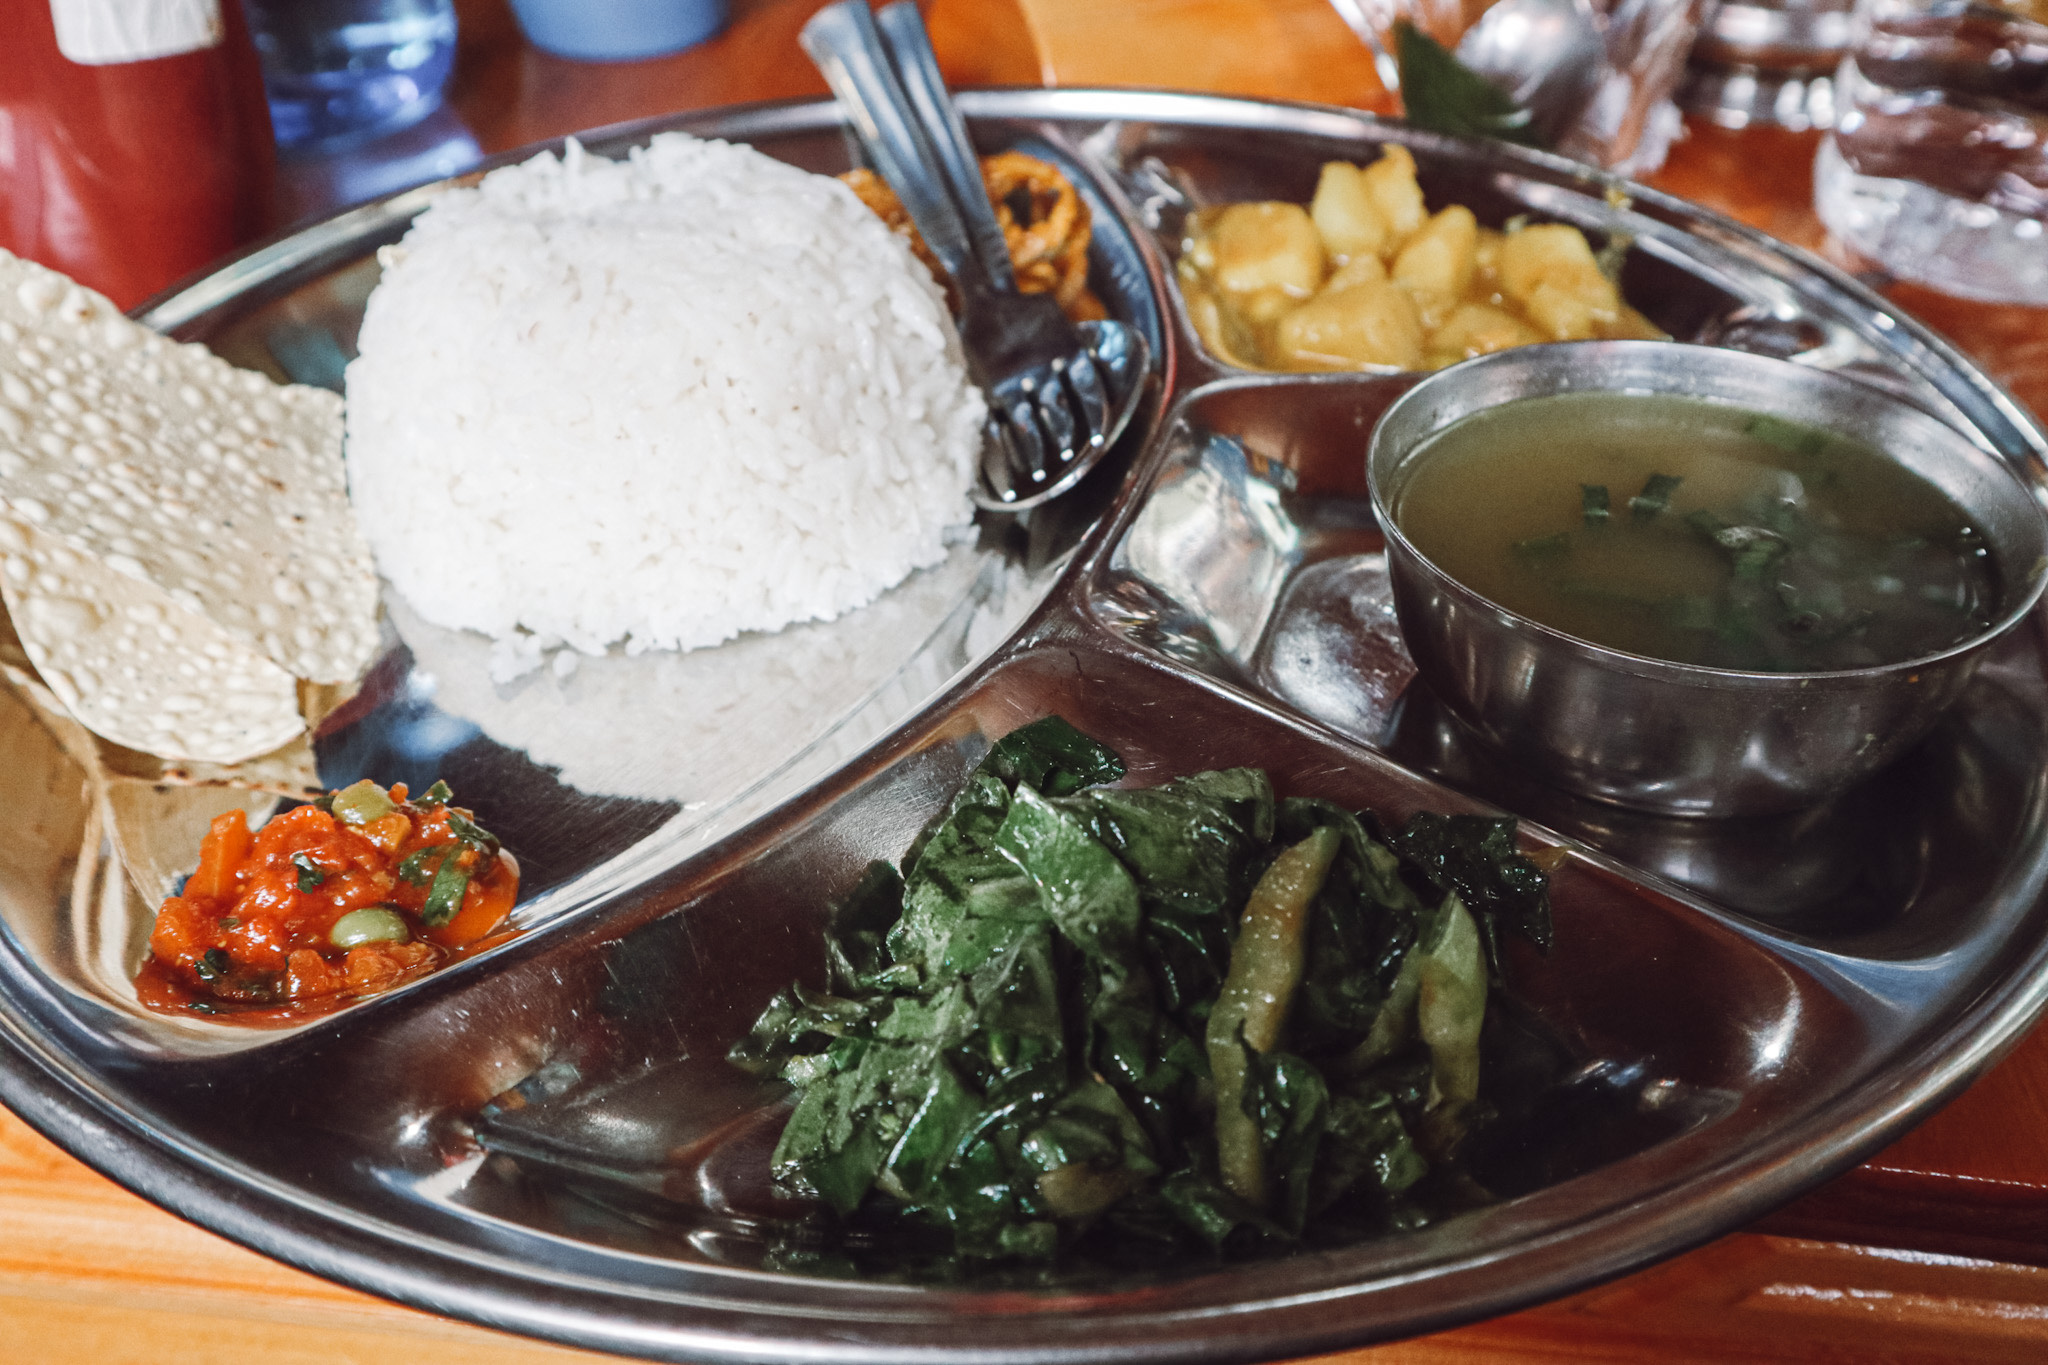 How to Eat Gluten Free in Nepal Safely